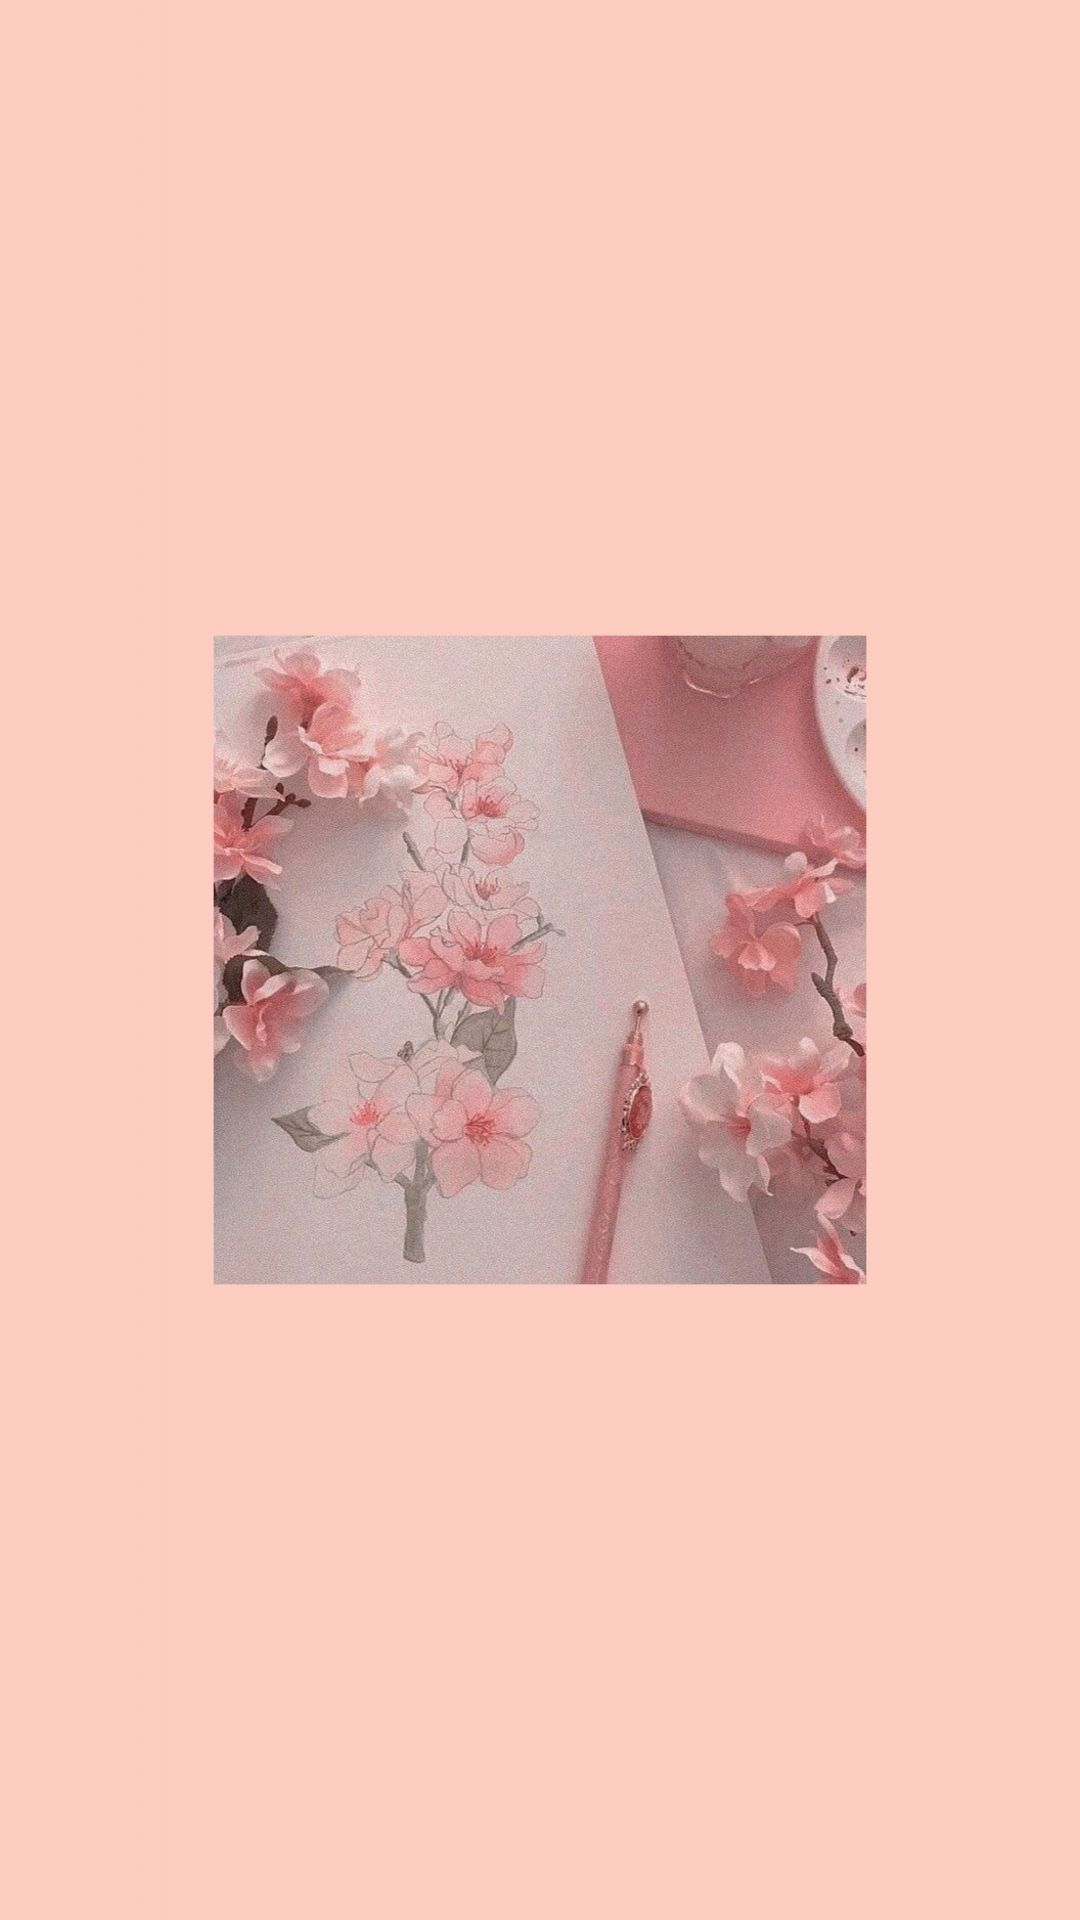 Cool Tumblr Aesthetic Android Iphone Desktop Hd Backgrounds Wallpapers 1080p 4k 10 Iphone Wallpaper Vintage Aesthetic Iphone Wallpaper Soft Wallpaper